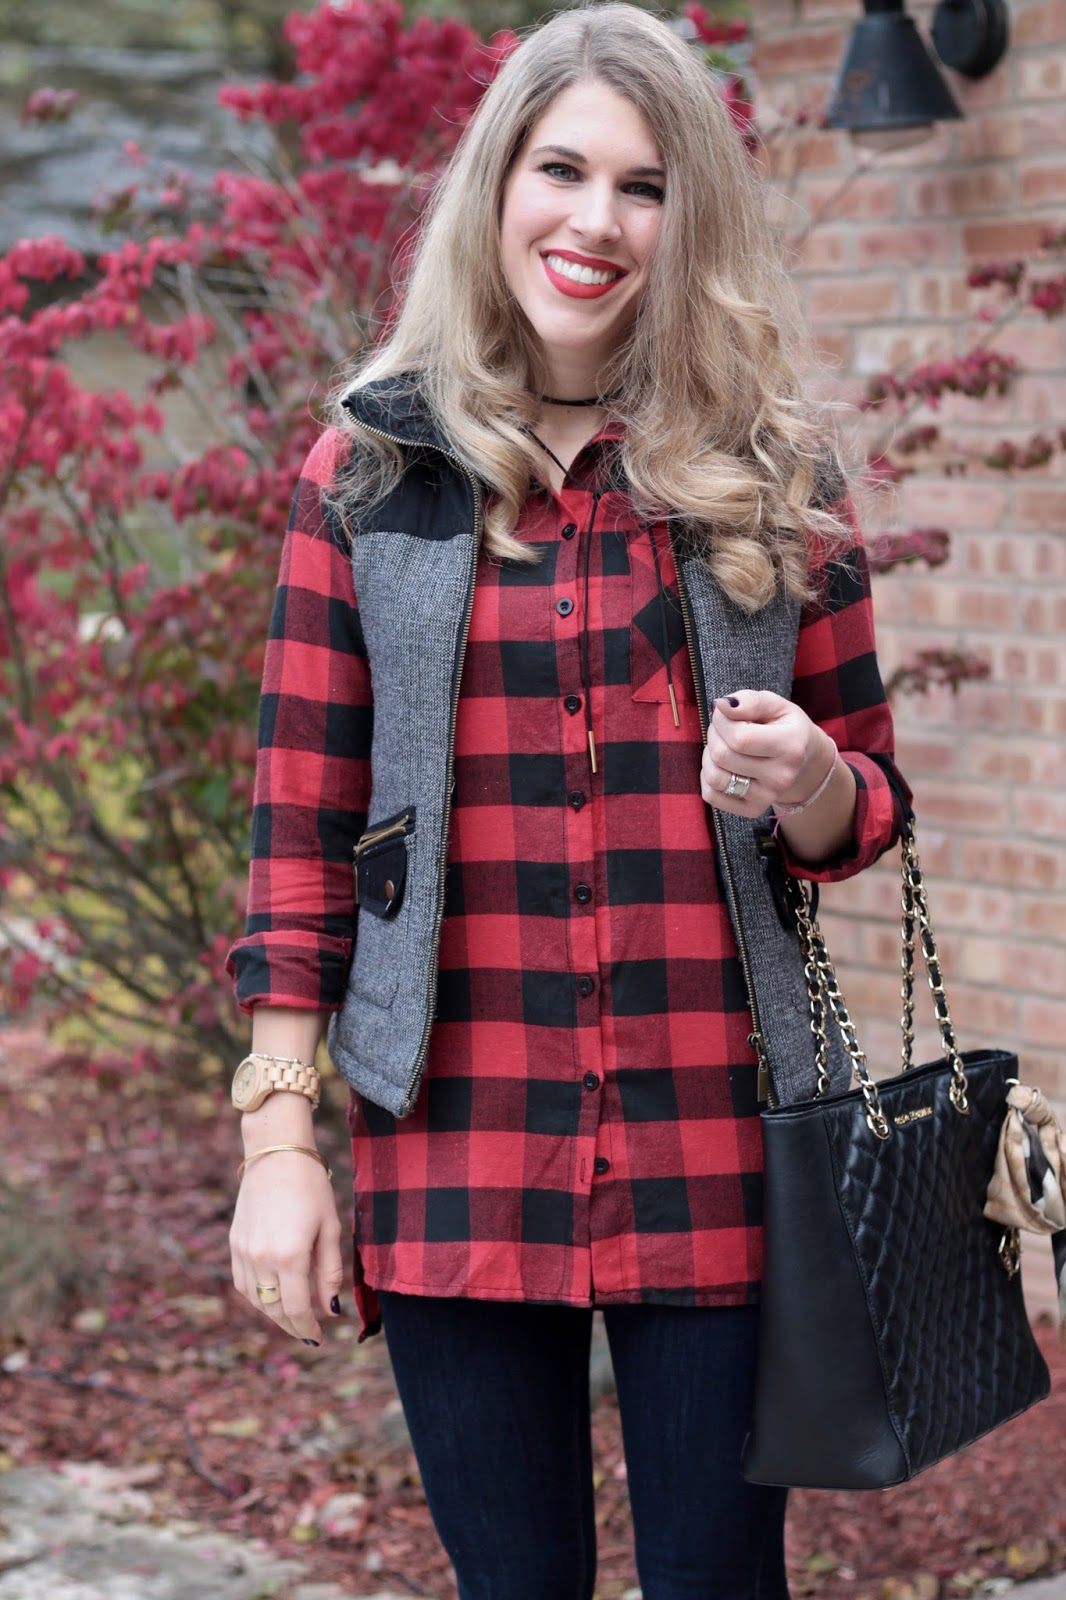 buffalo plaid, houndstooth vest, tweed puffer vest, dark skinny jeans, greg michaels tote, black booties